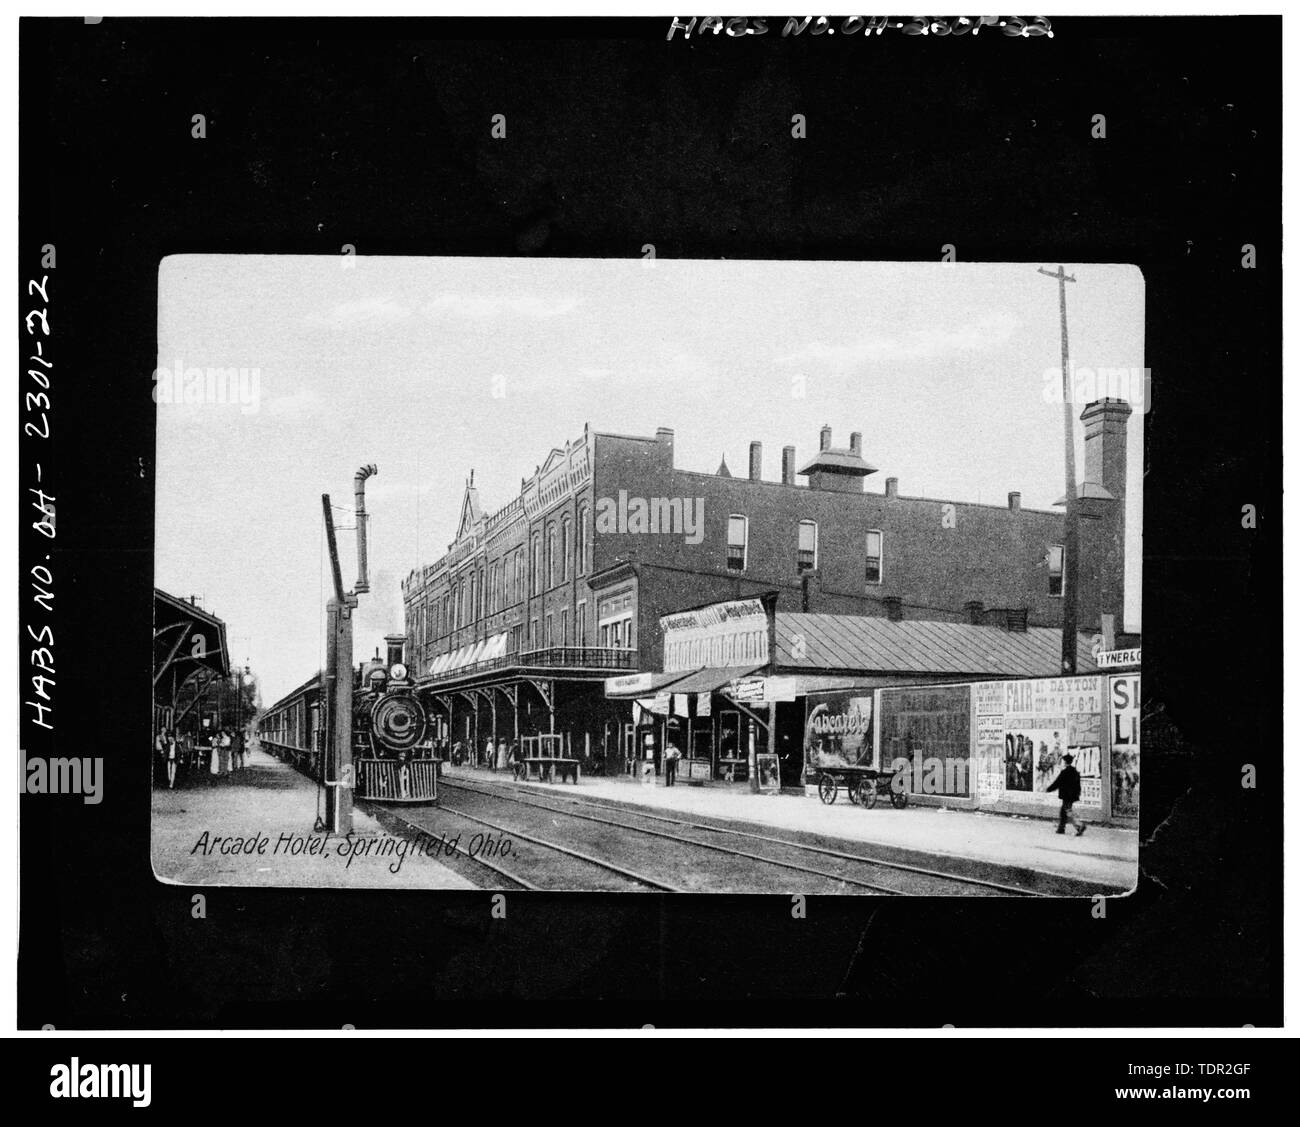 Photograph of postcard (from the Clark County Historical Society, Springfield, Ohio, circa 1920) ARCADE HOTEL, VIEW NORTHWEST, SOUTH AND EAST FACADES. - Arcade Hotel, Fountain Avenue, bounded by High and Washington Streets, Springfield, Clark County, OH - Stock Image